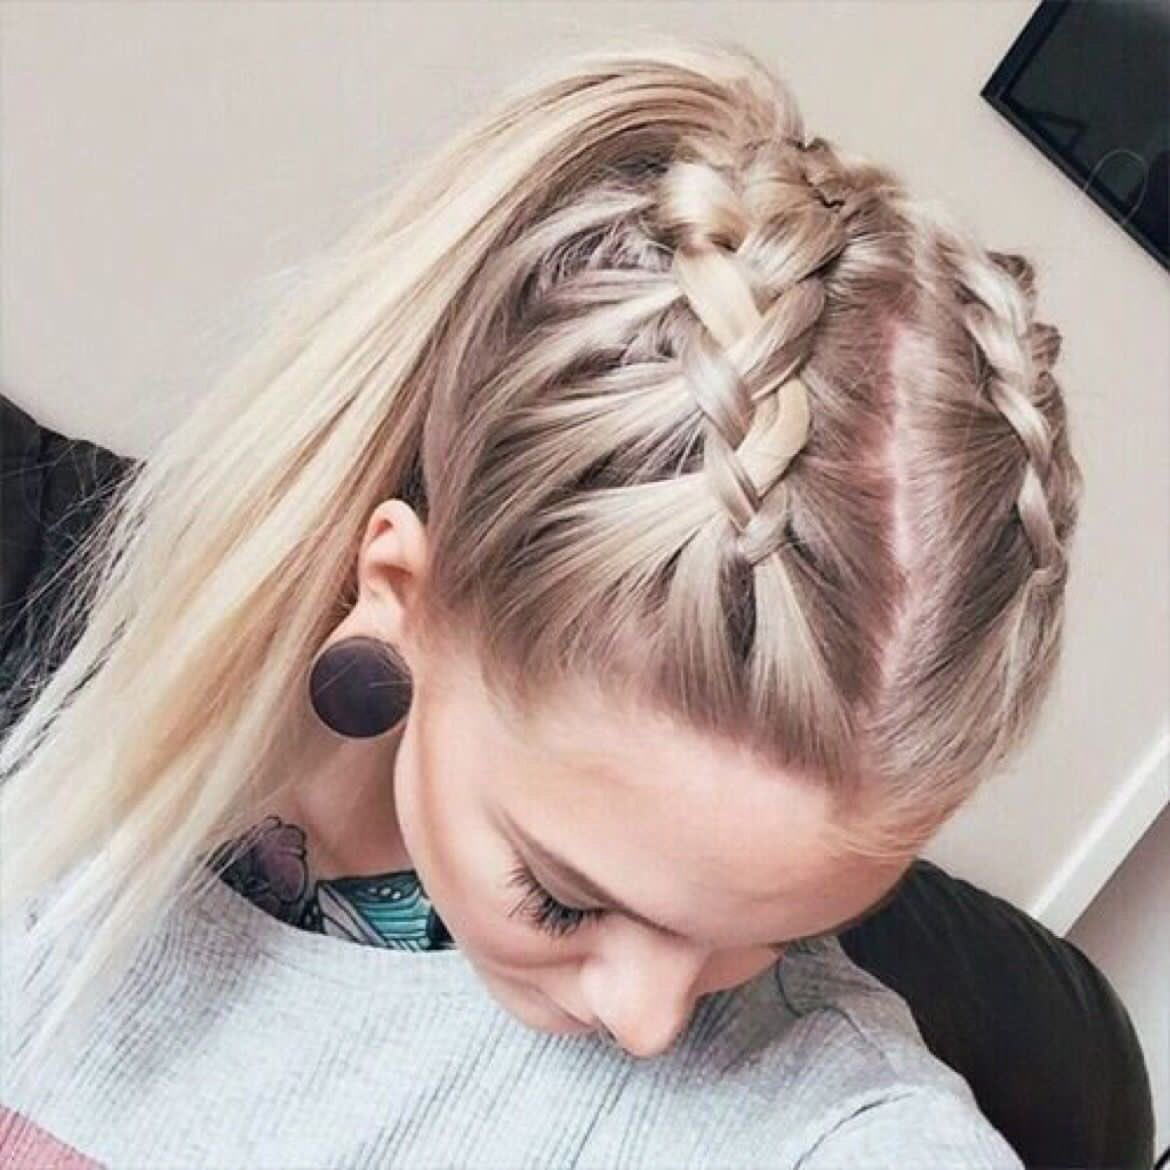 Hairstyles For School Easy Pinaubrey Lukens On Hair  Pinterest  Hair Style Haircuts And